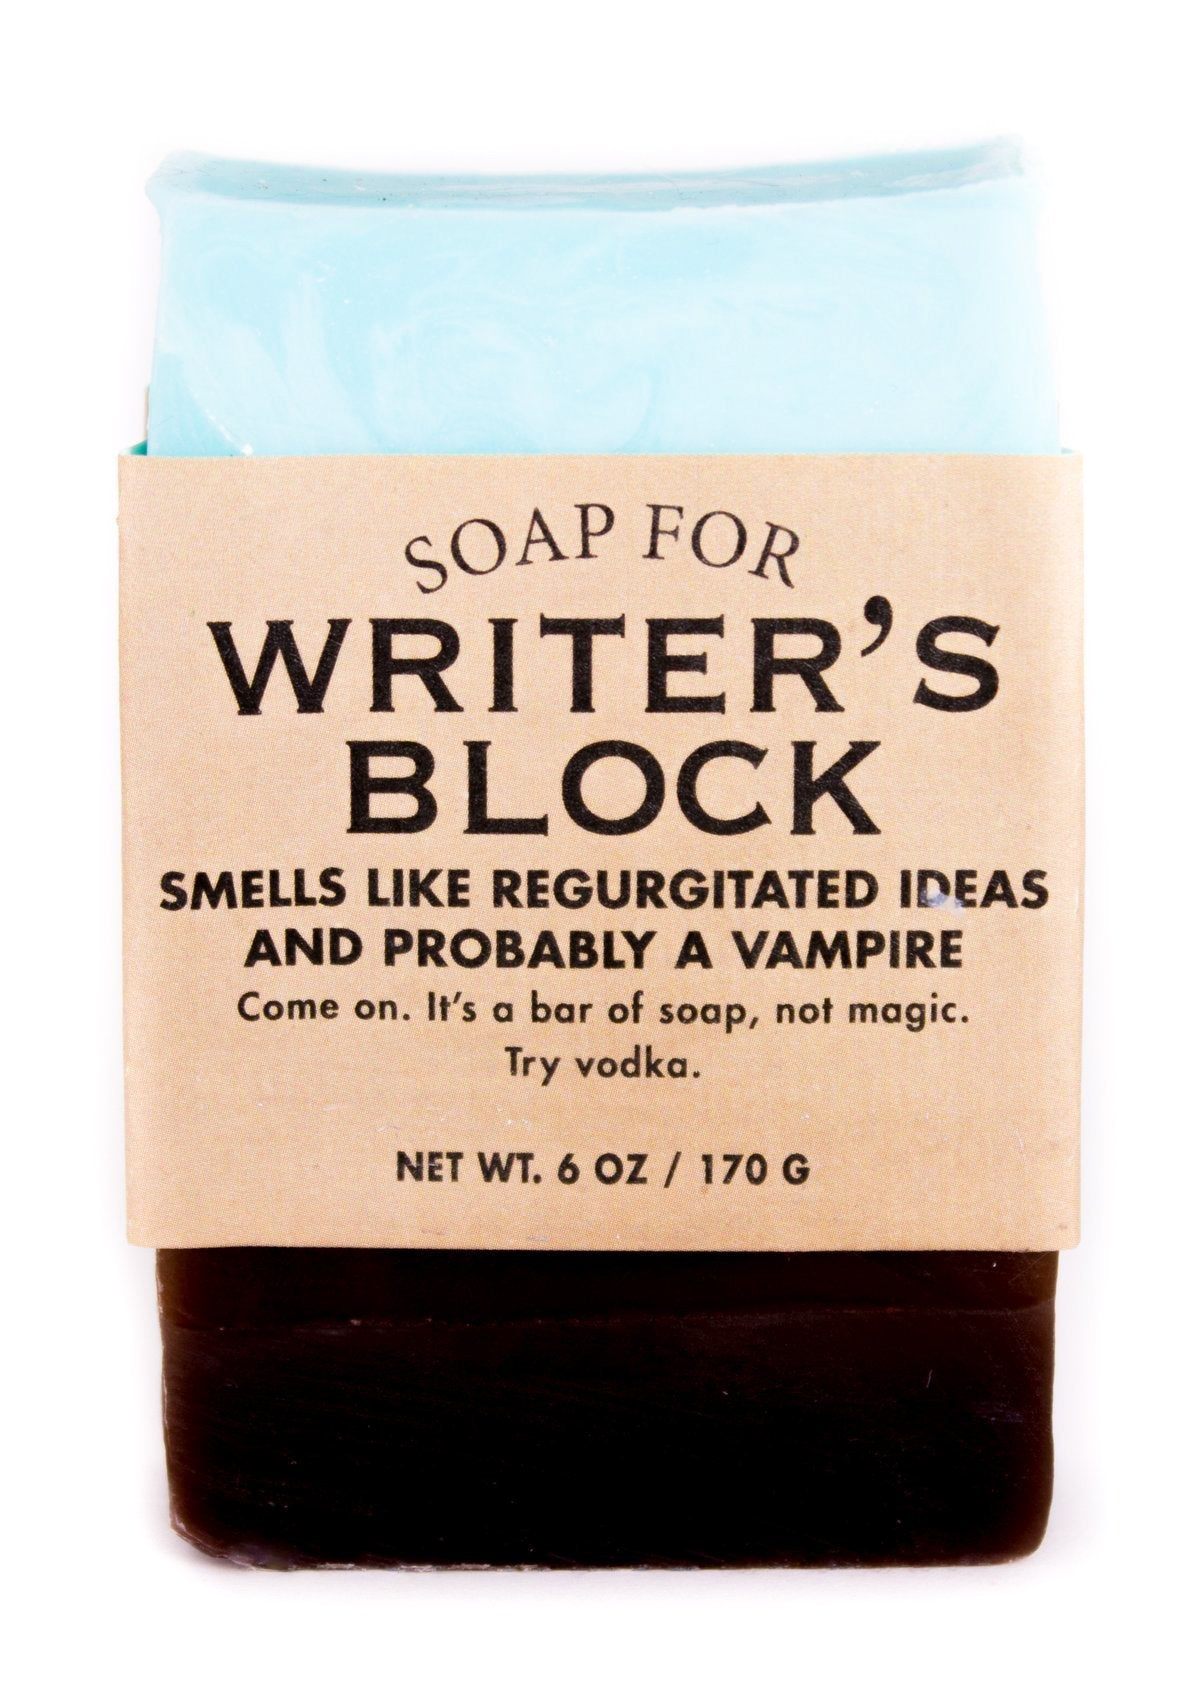 Soap for Writer's Block - Heart of the Home PA